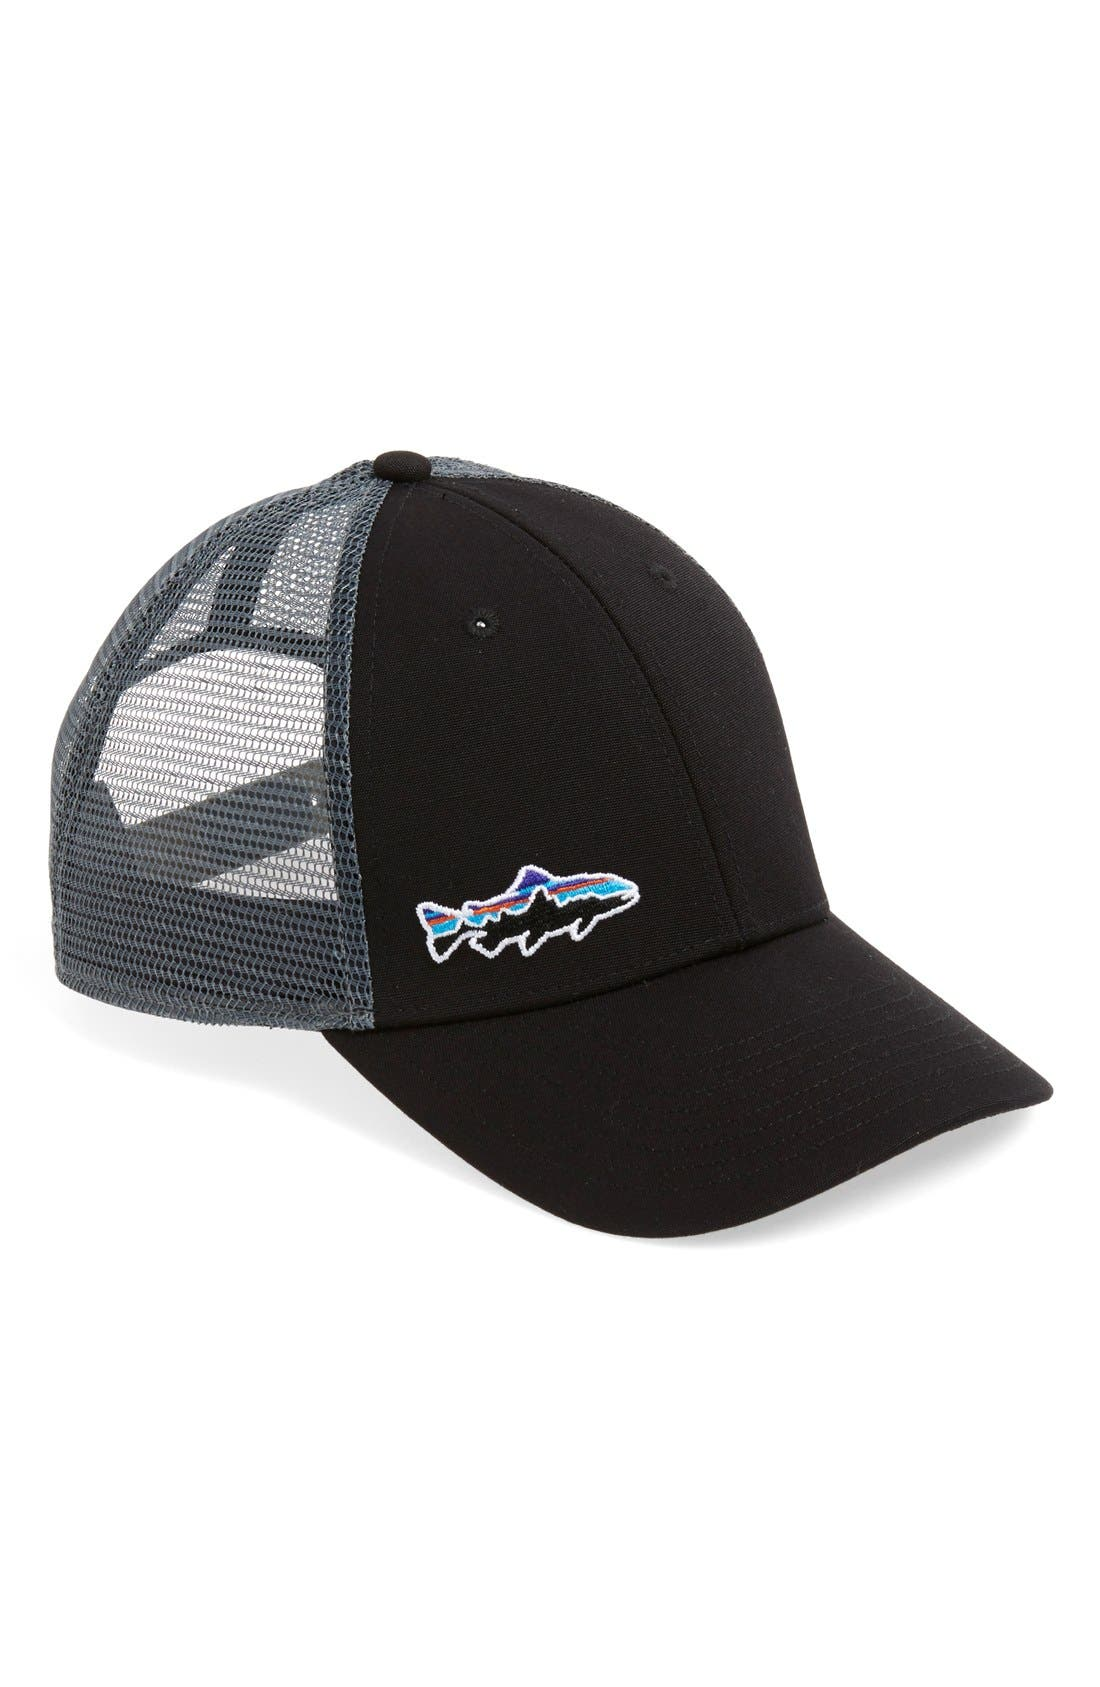 Alternate Image 1 Selected - Patagonia 'Fitz Roy' Trucker Hat